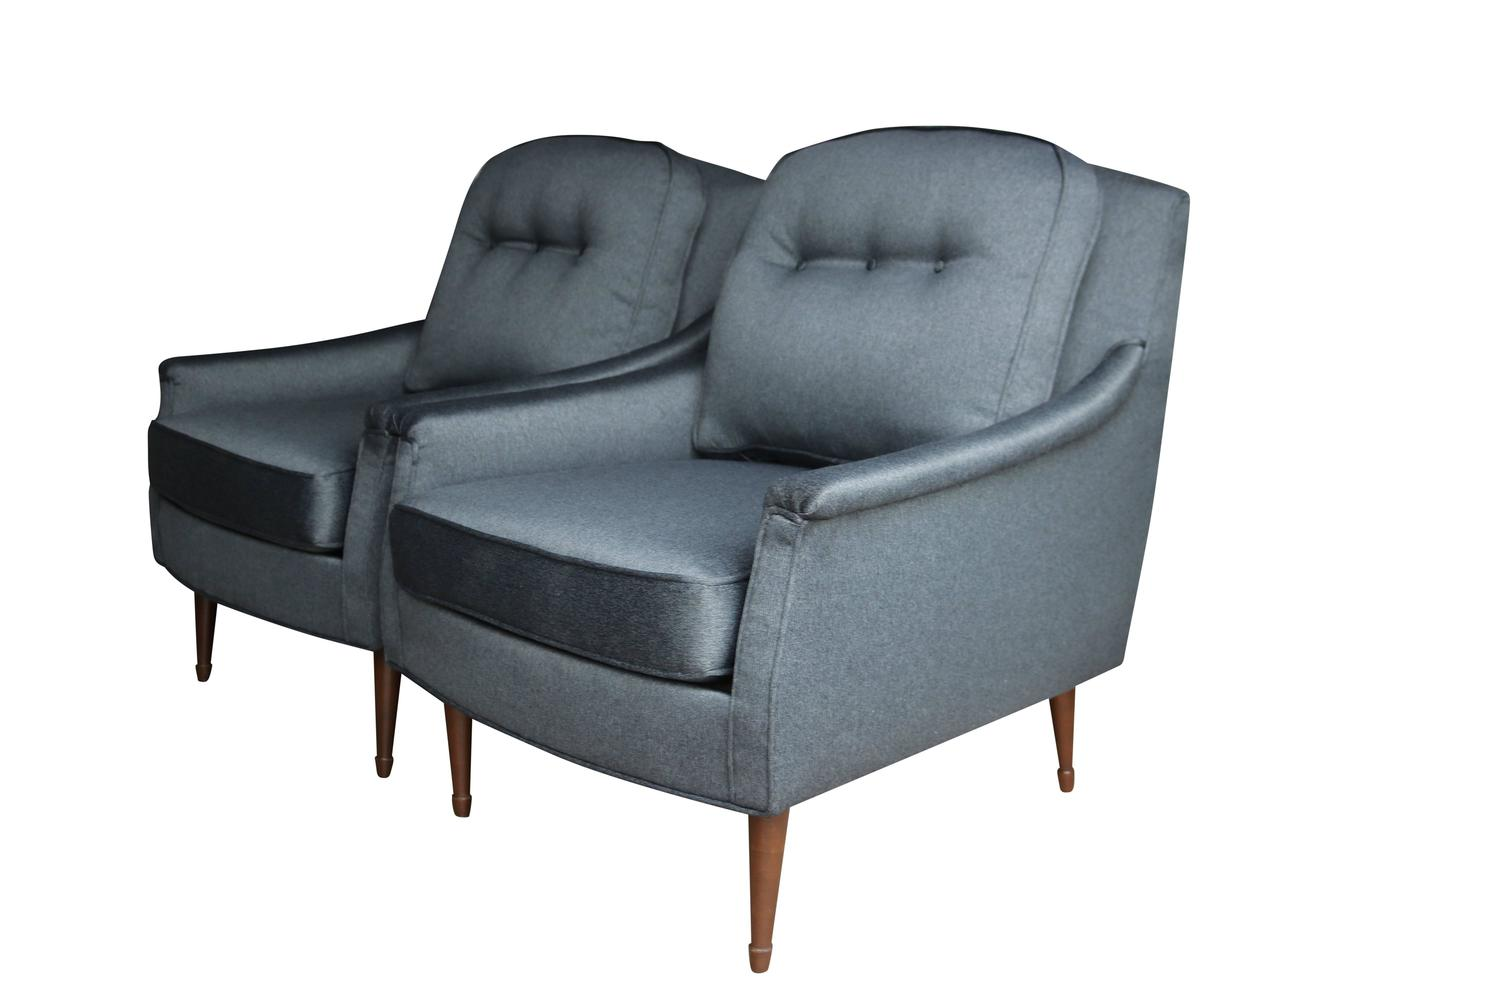 grey modern armchairs posture for chair pair of mid century at 1stdibs